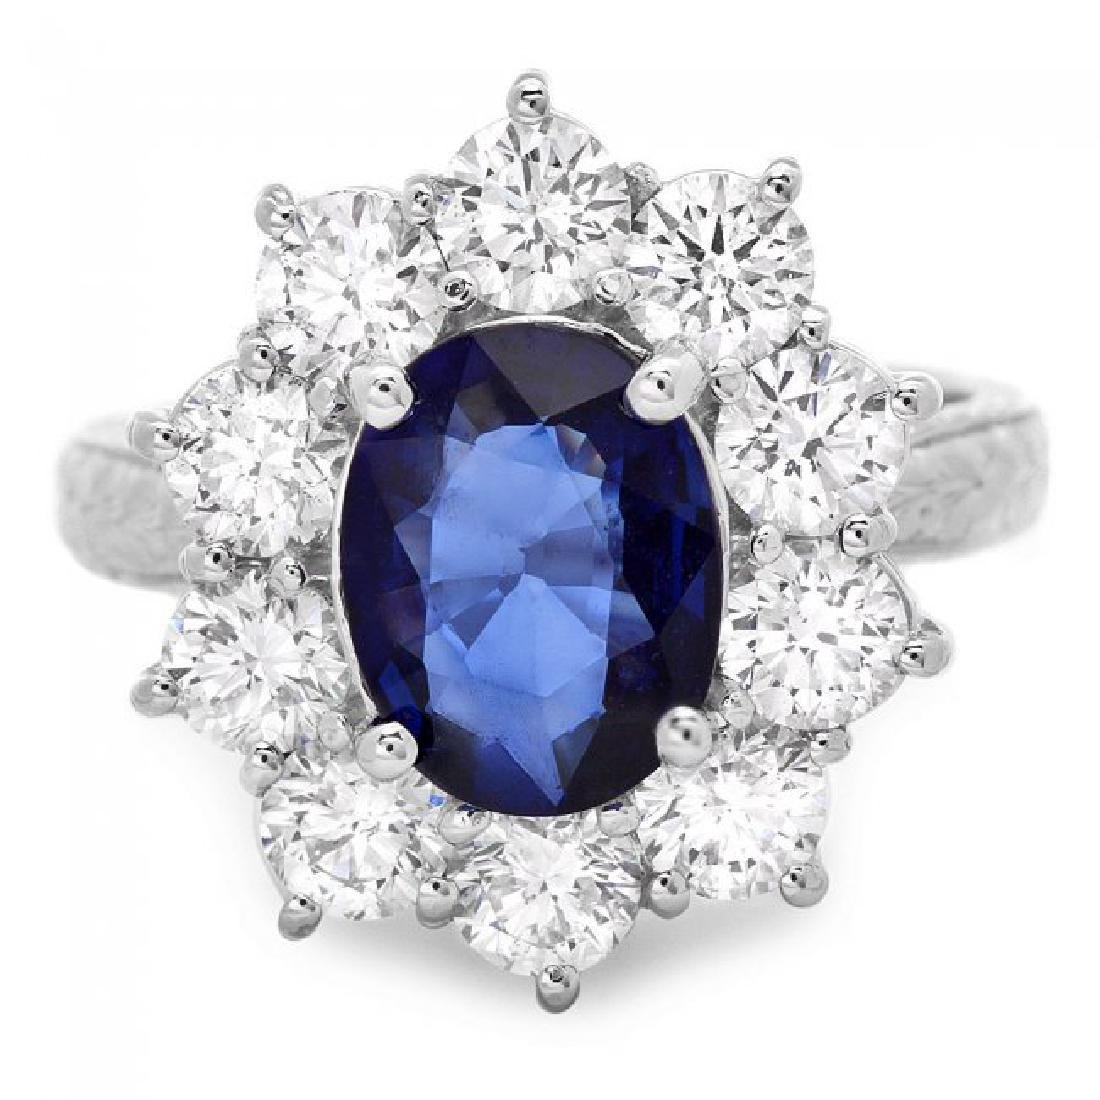 18k Gold 2.10ct Sapphire 2.10ct Diamond Ring - 2